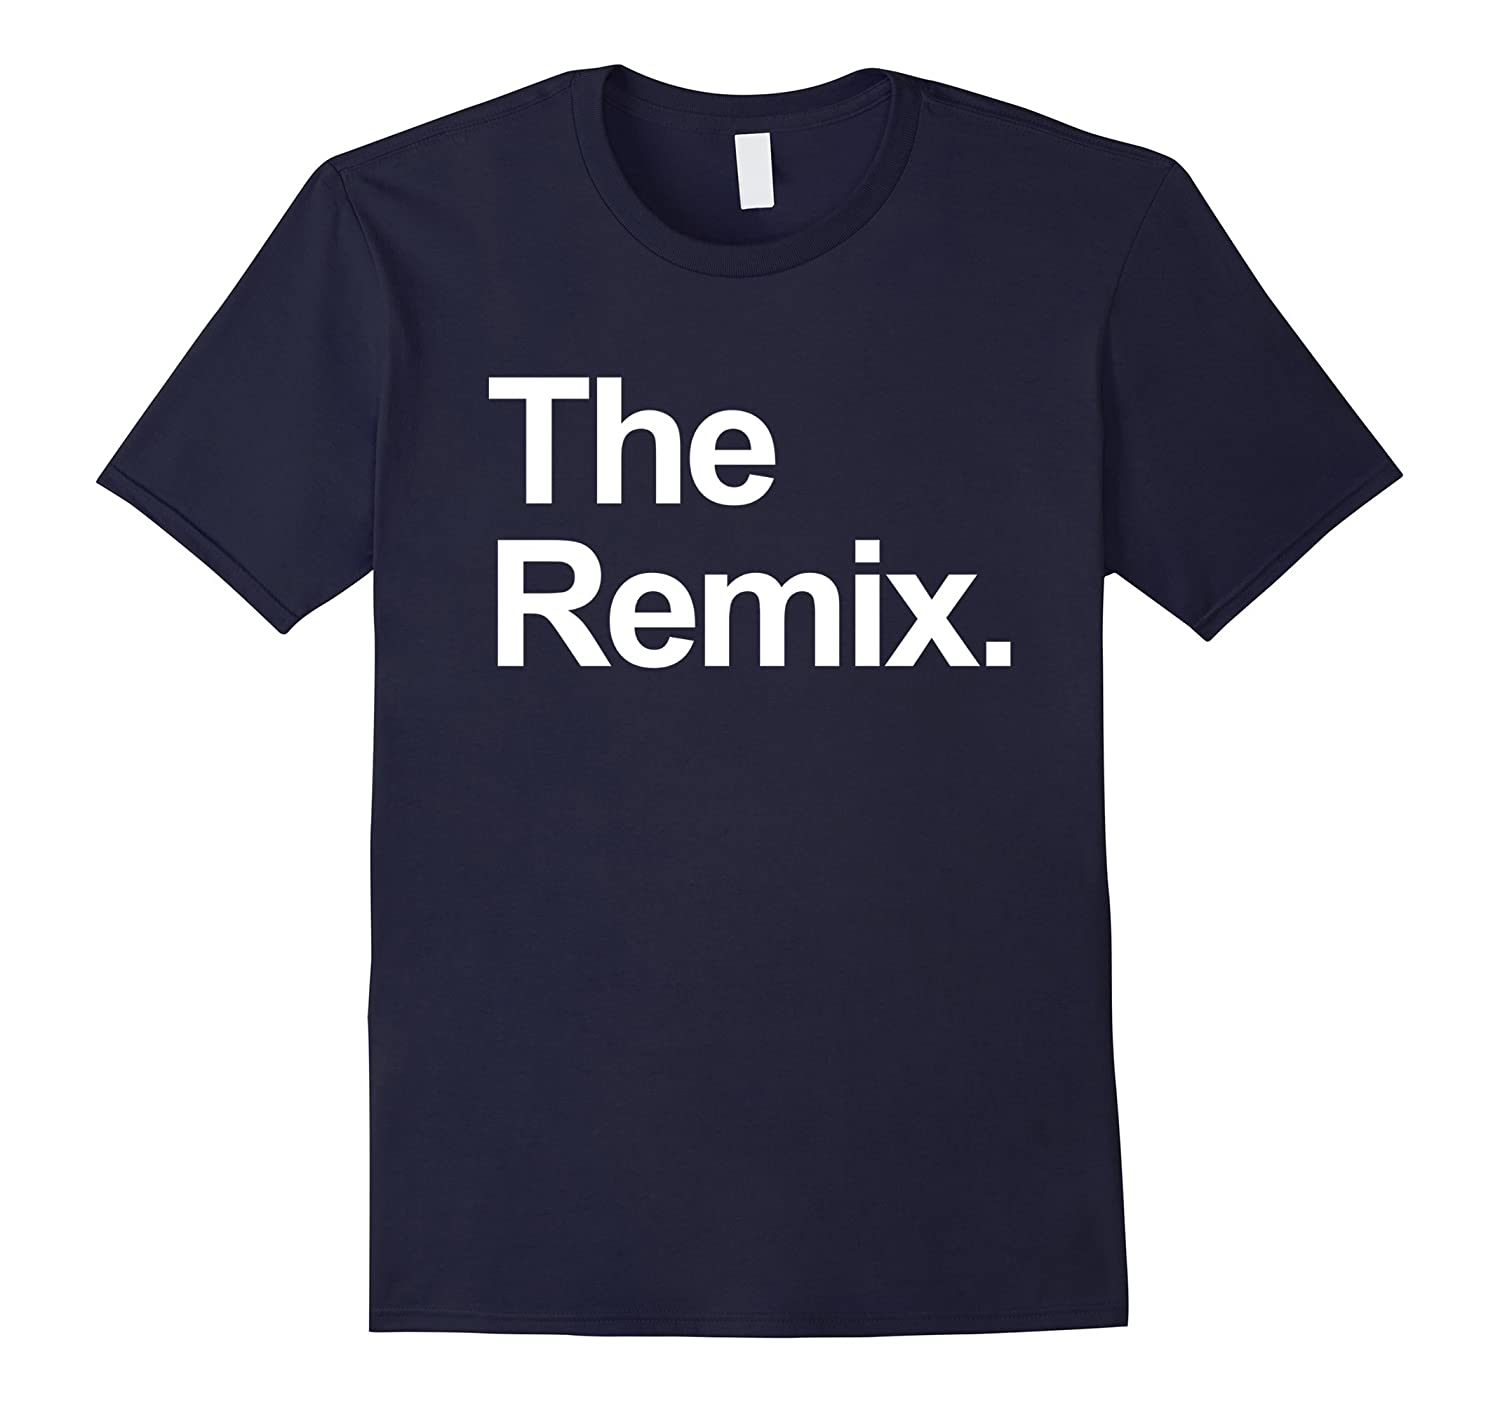 Adult The Original The Remix Funny Matching Birthday Shirts